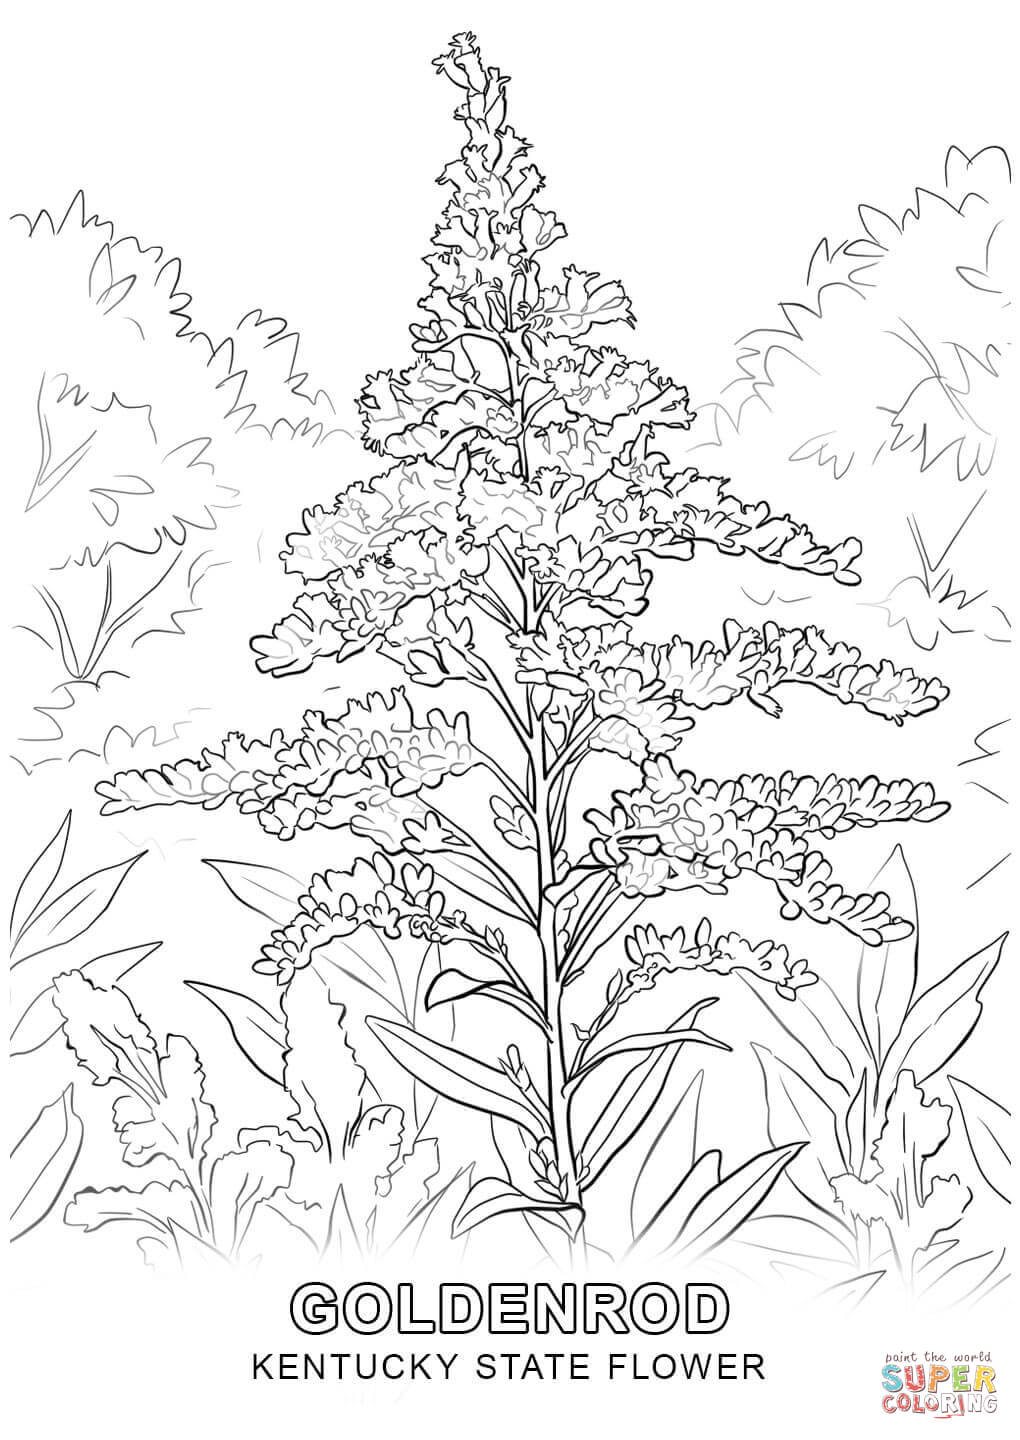 kentucky state flower coloring page kentucky state flower coloring page woo jr kids activities kentucky coloring flower state page